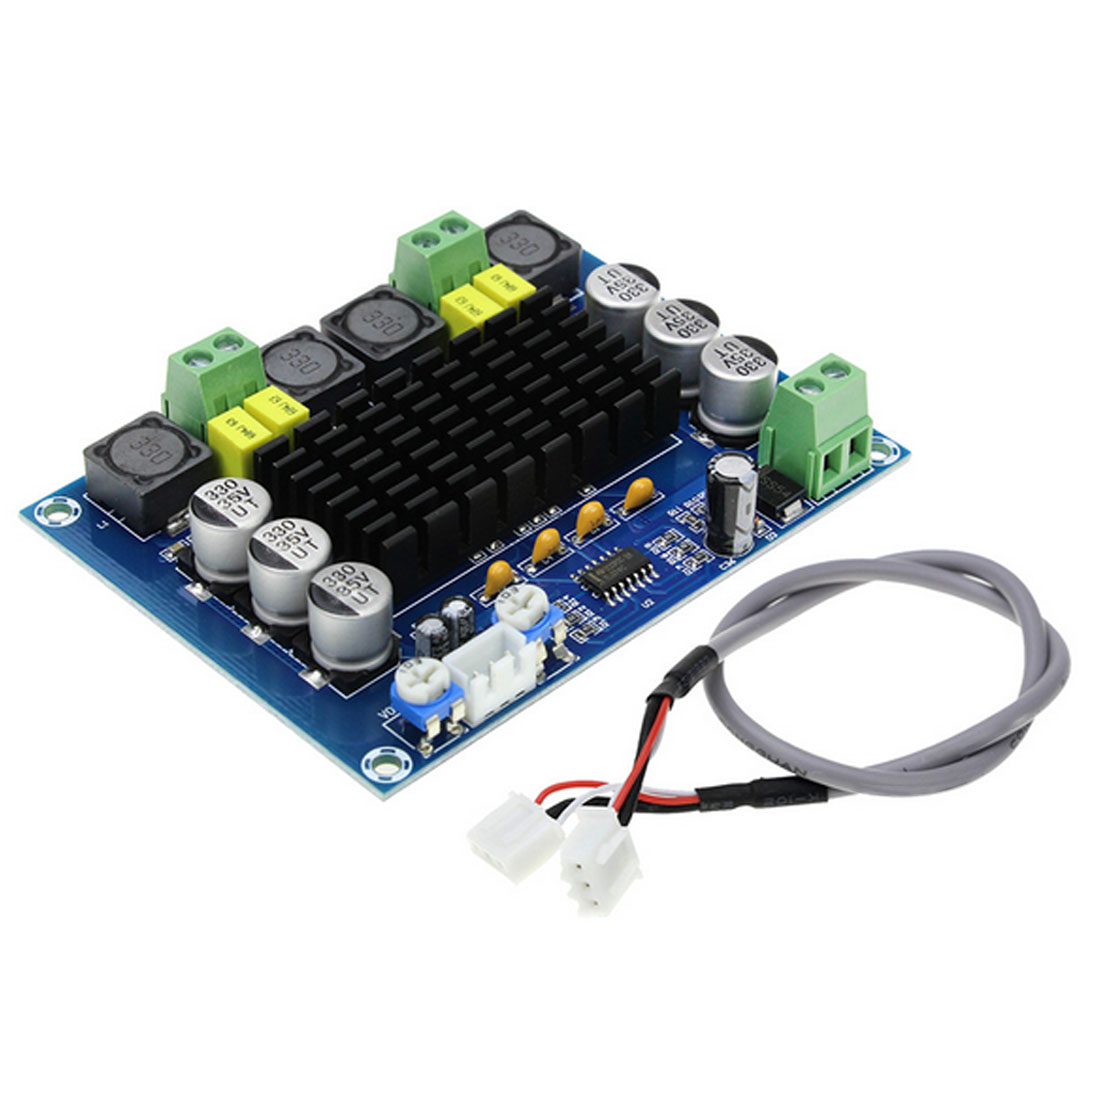 Buy Quality Amplifiers And Get Free Shipping On 2n3055 50w Audio Amplifier